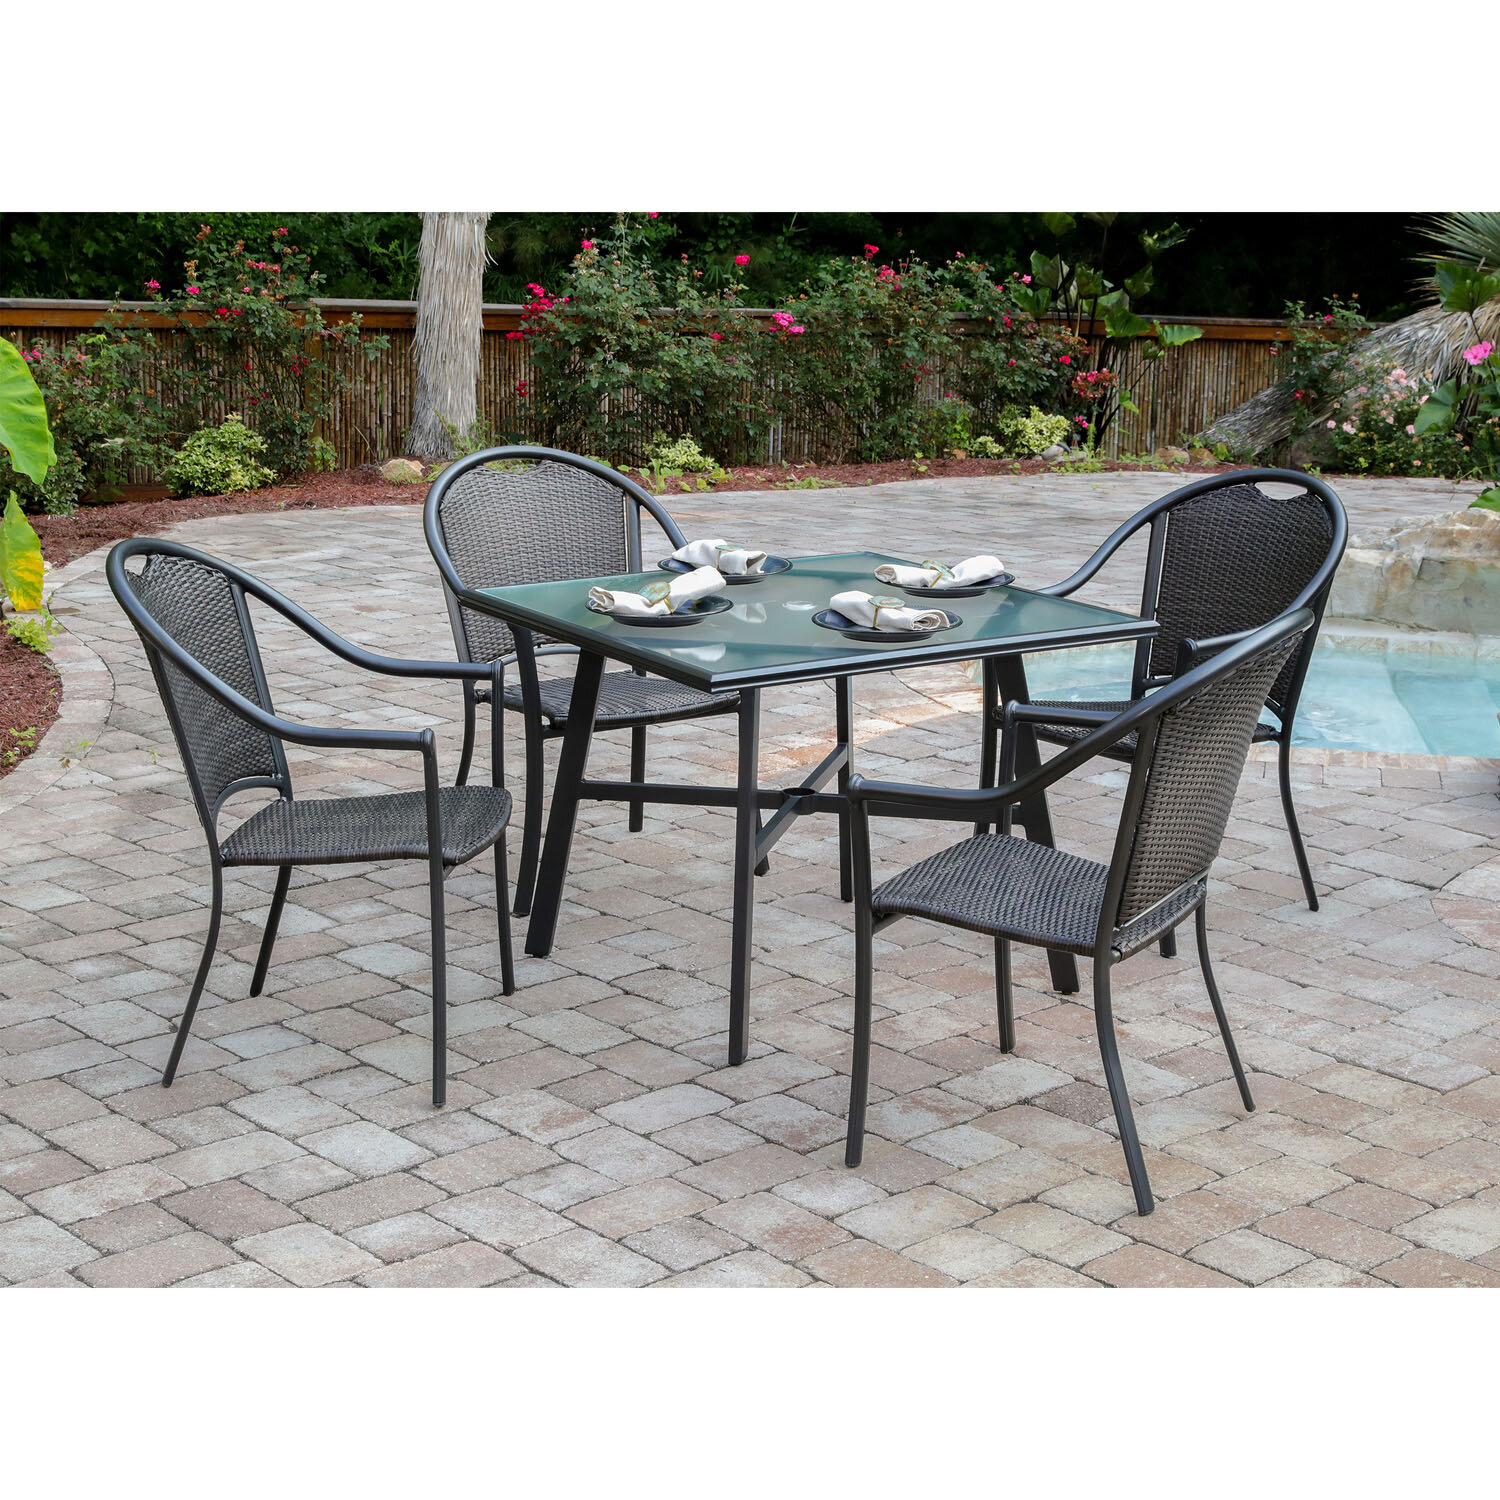 Charlton Home Bearden 5 Piece Commercial Grade Patio Set With 4 Inside Most Popular Bearden 3 Piece Dining Sets (#5 of 20)